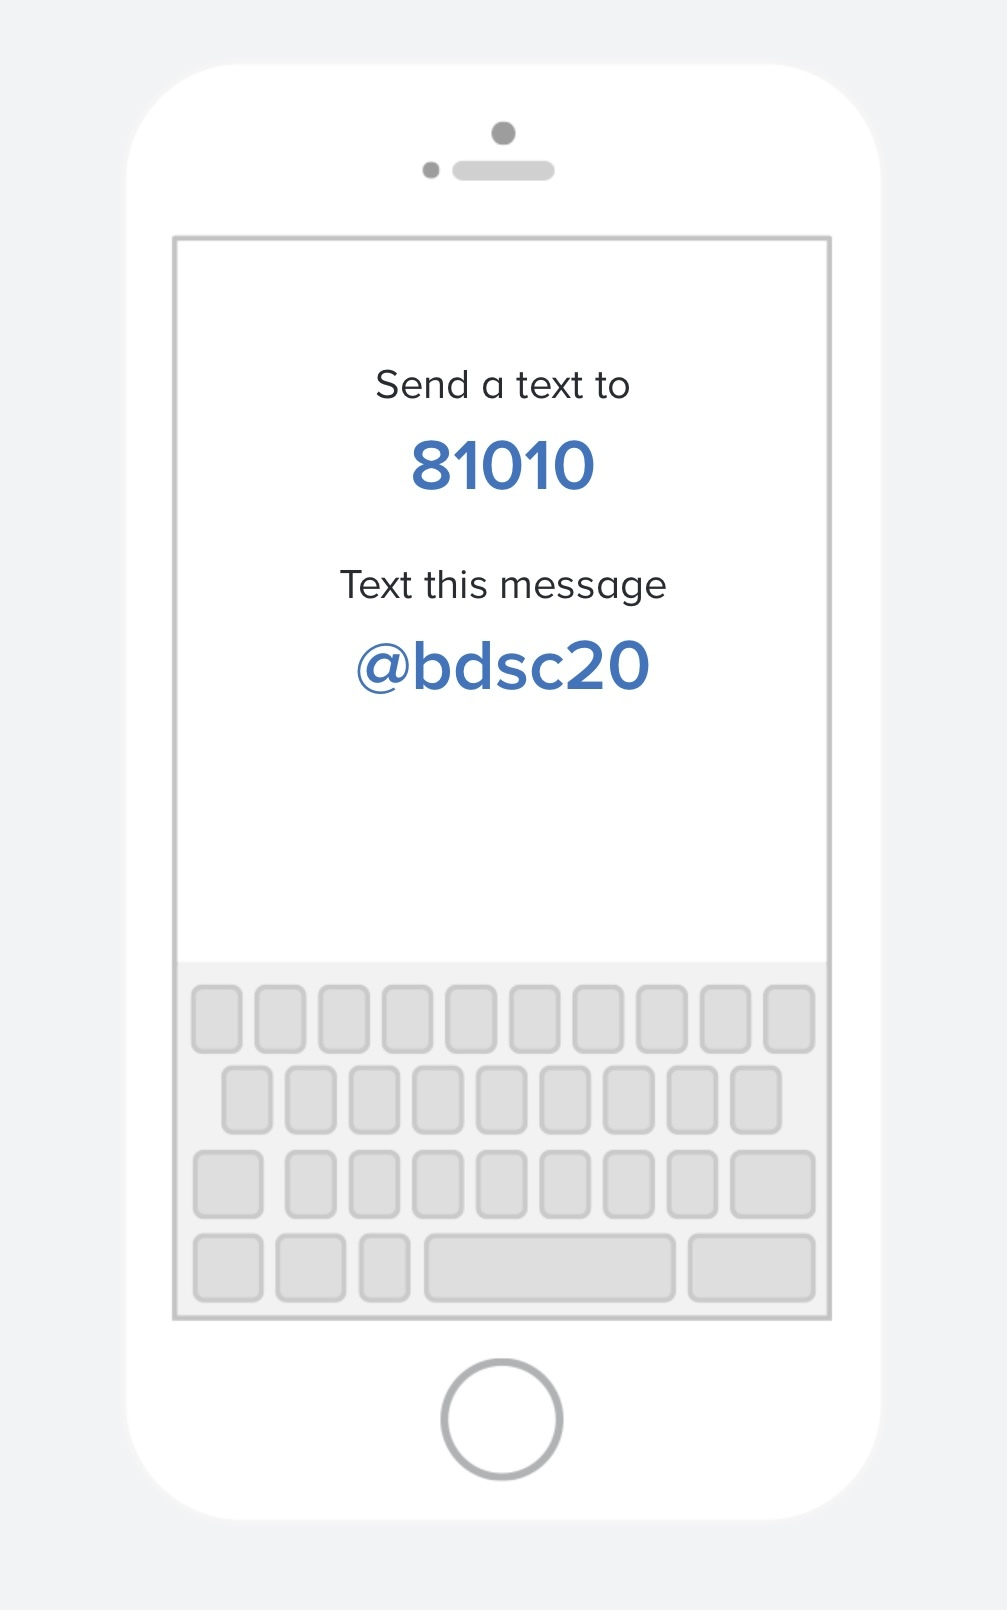 Please visit http://www.remind.com/join/bdsc20